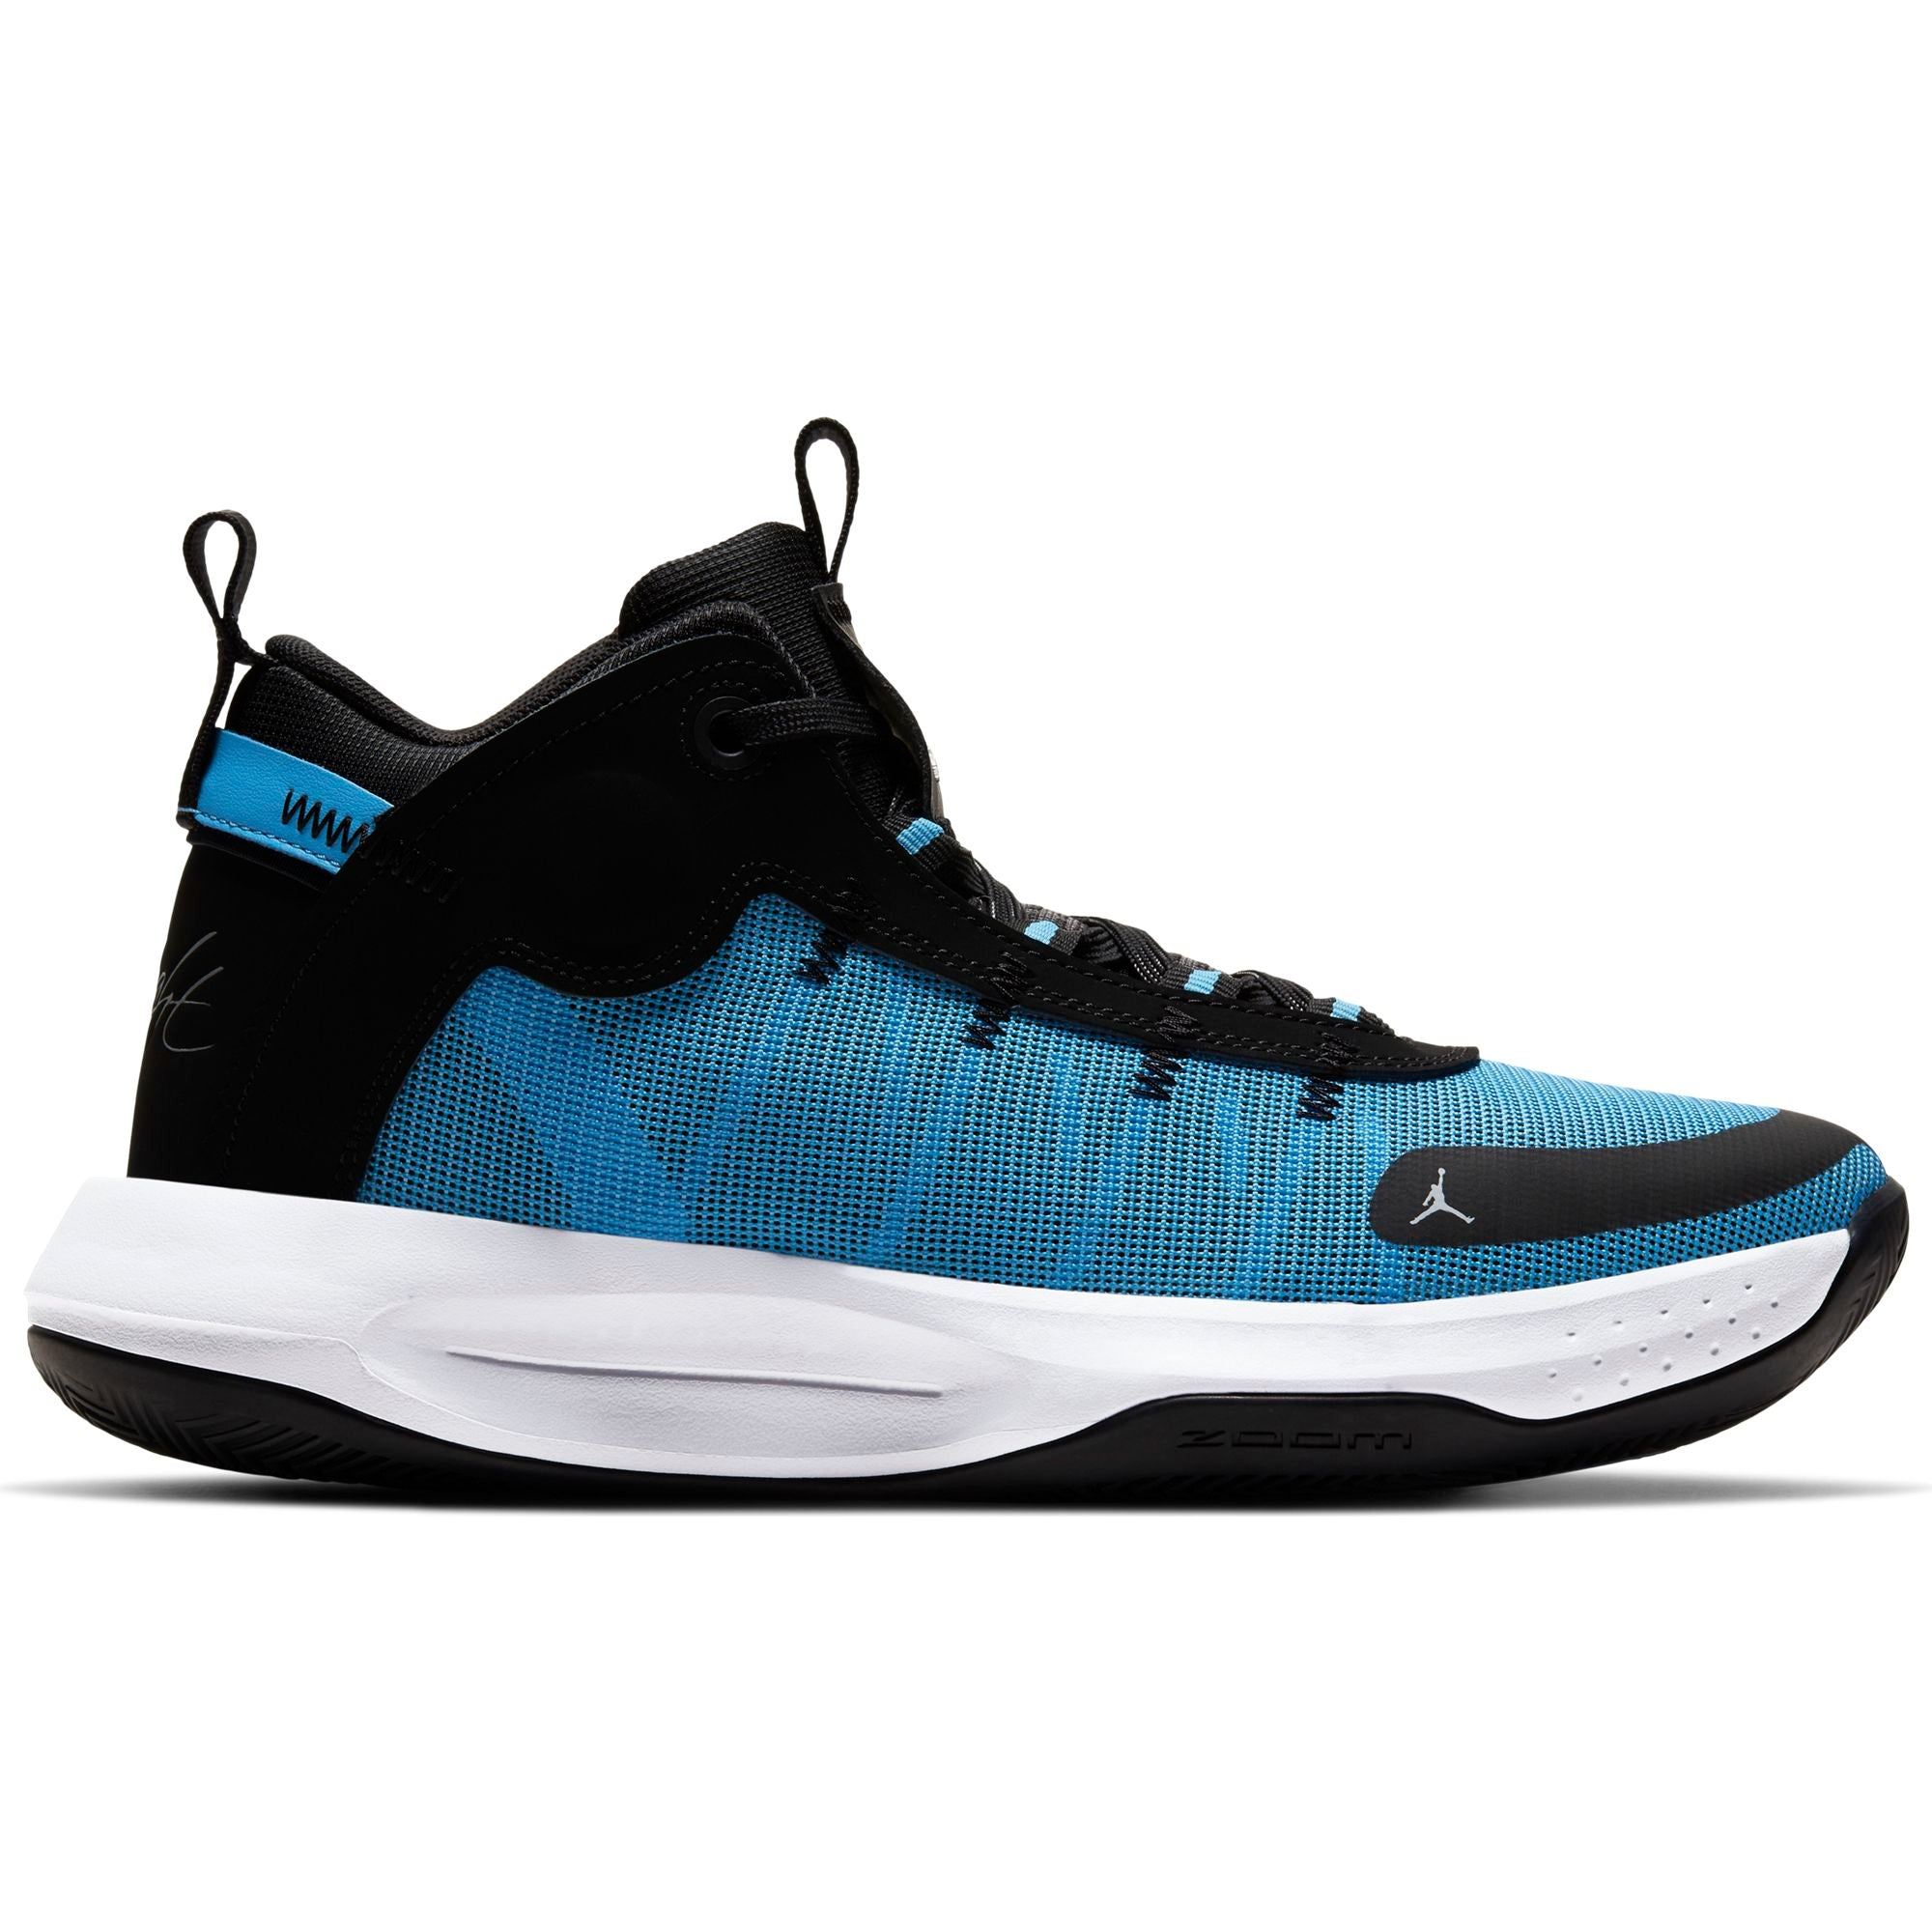 Nike Jordan Jumpman 2020 Basketball Boot/shoe - University Blue/Metallic Silver/Black